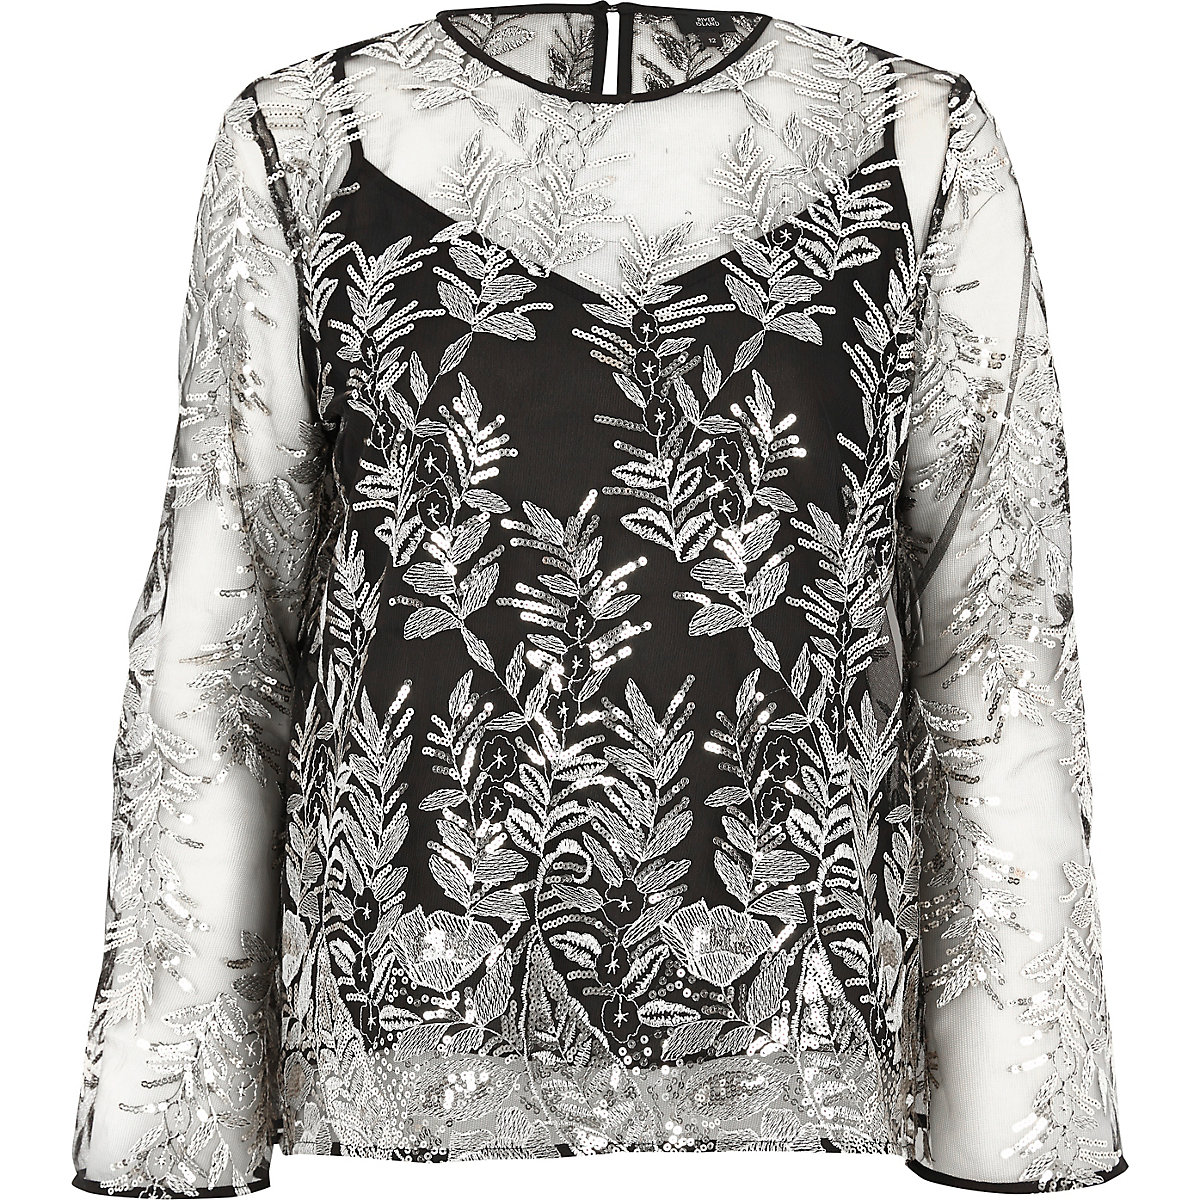 Black mesh sequin embroidered bell sleeve top